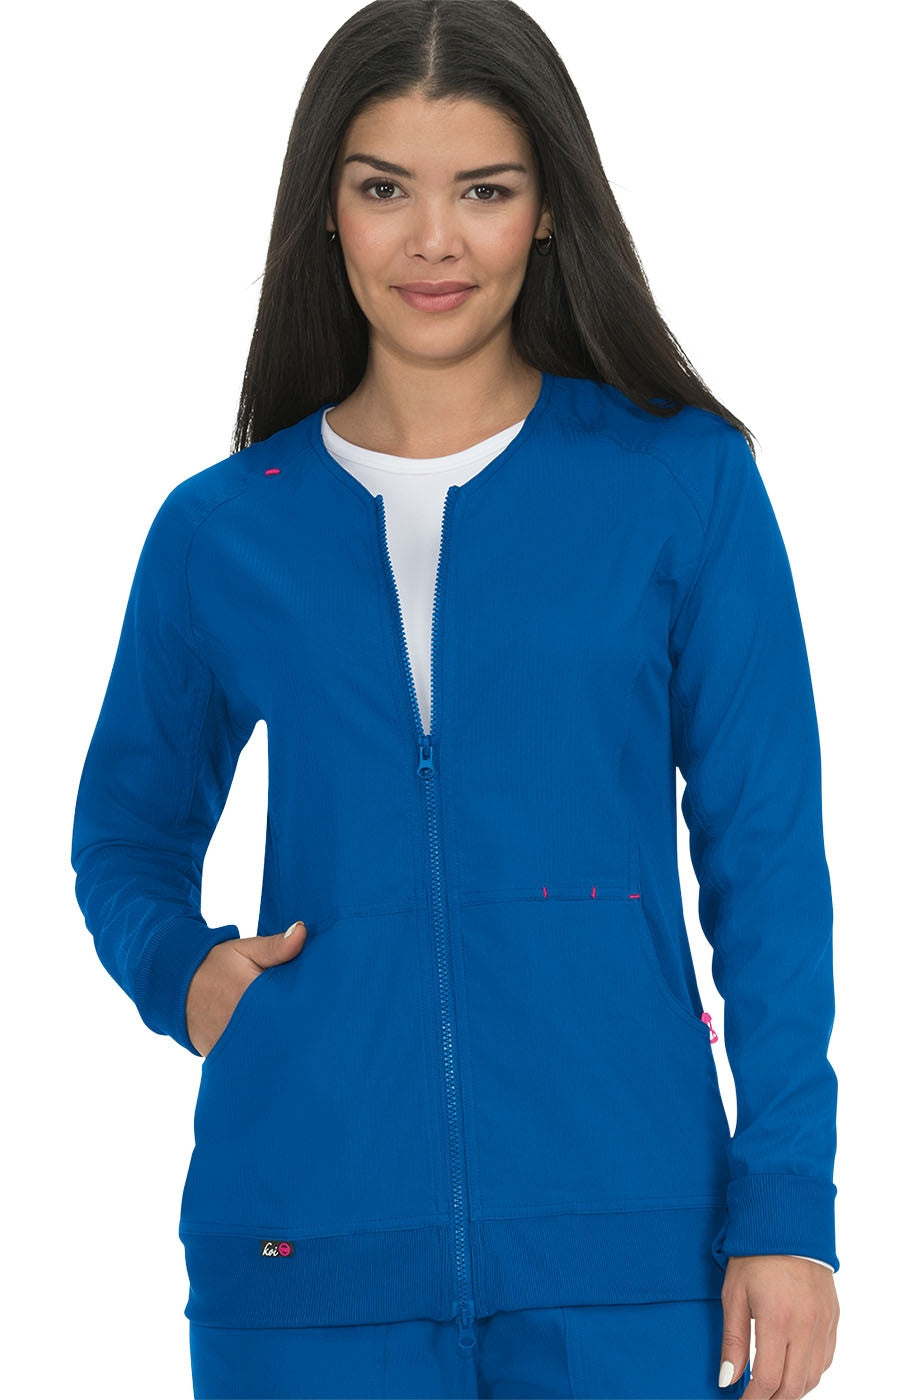 Clarity Jacket - Scrubs Galore and More